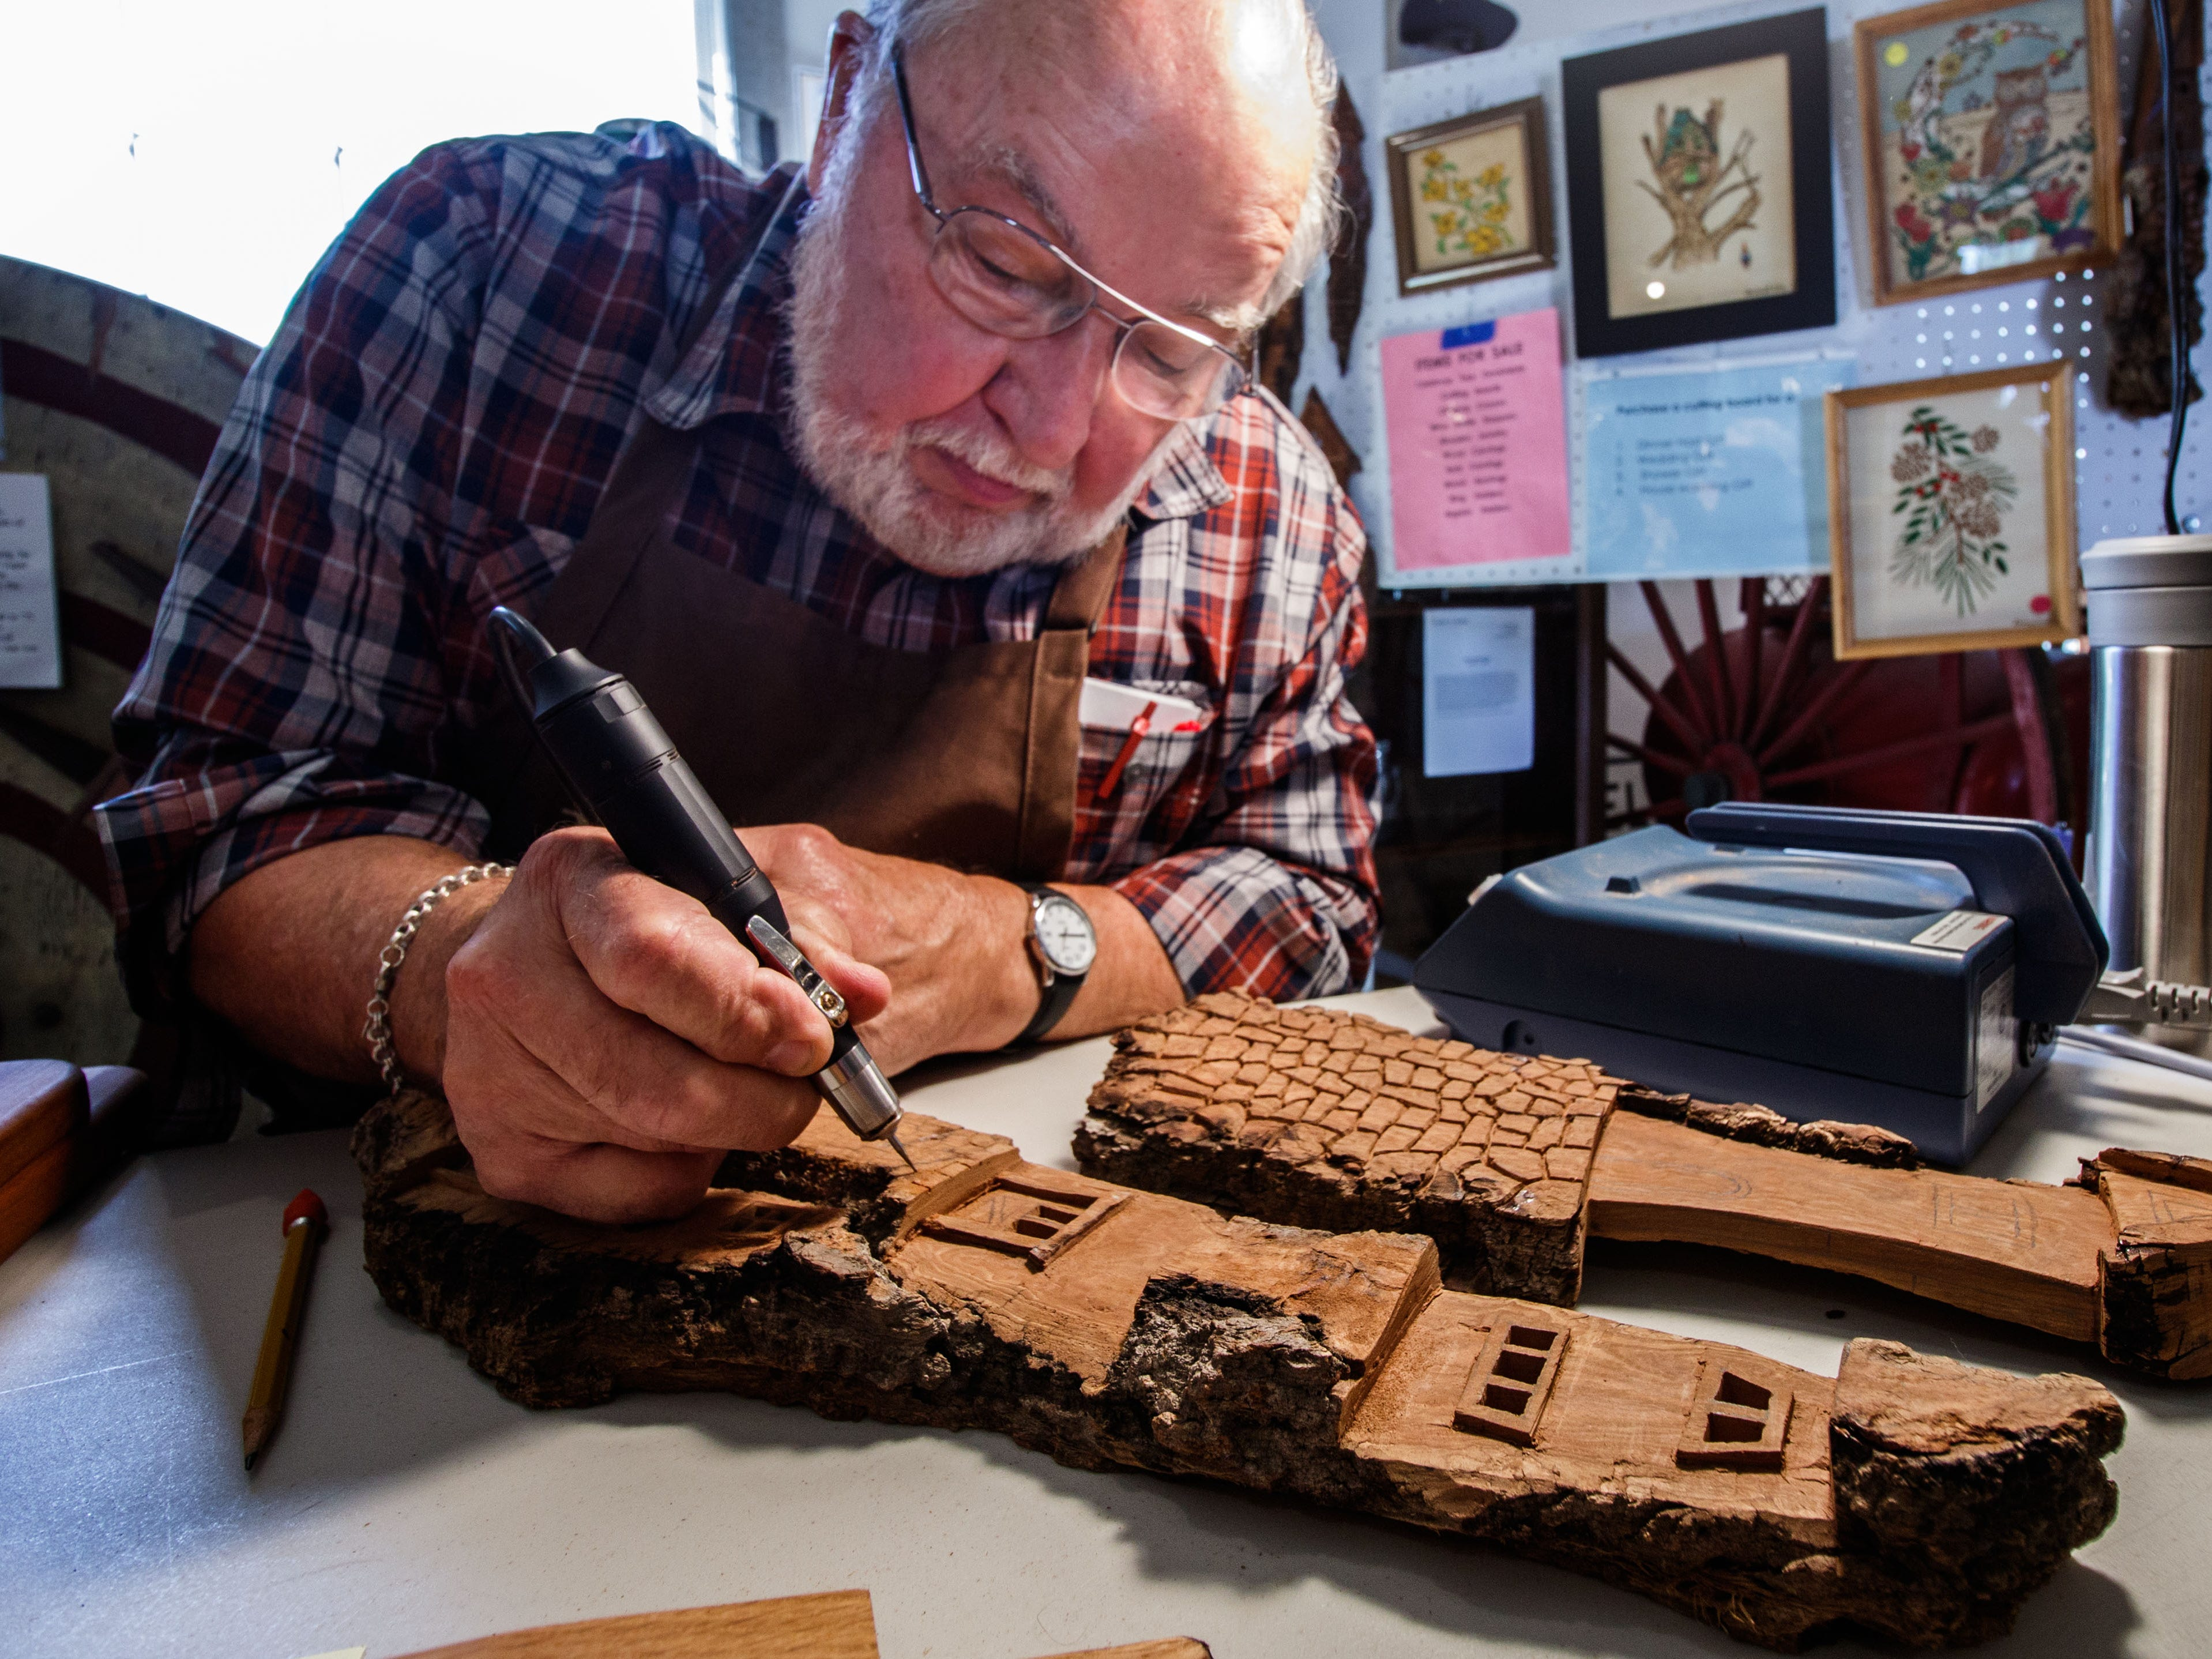 Wood carver Dick Minch of Waukesha works on a whimsical bark carving during Harvest Fest at the Clark House Museum in Pewaukee on Sunday, Sept. 9, 2018. The annual event features hands-on activities and demonstrations of blacksmith, carving, butter churning, corn shelling, square dancing and more.